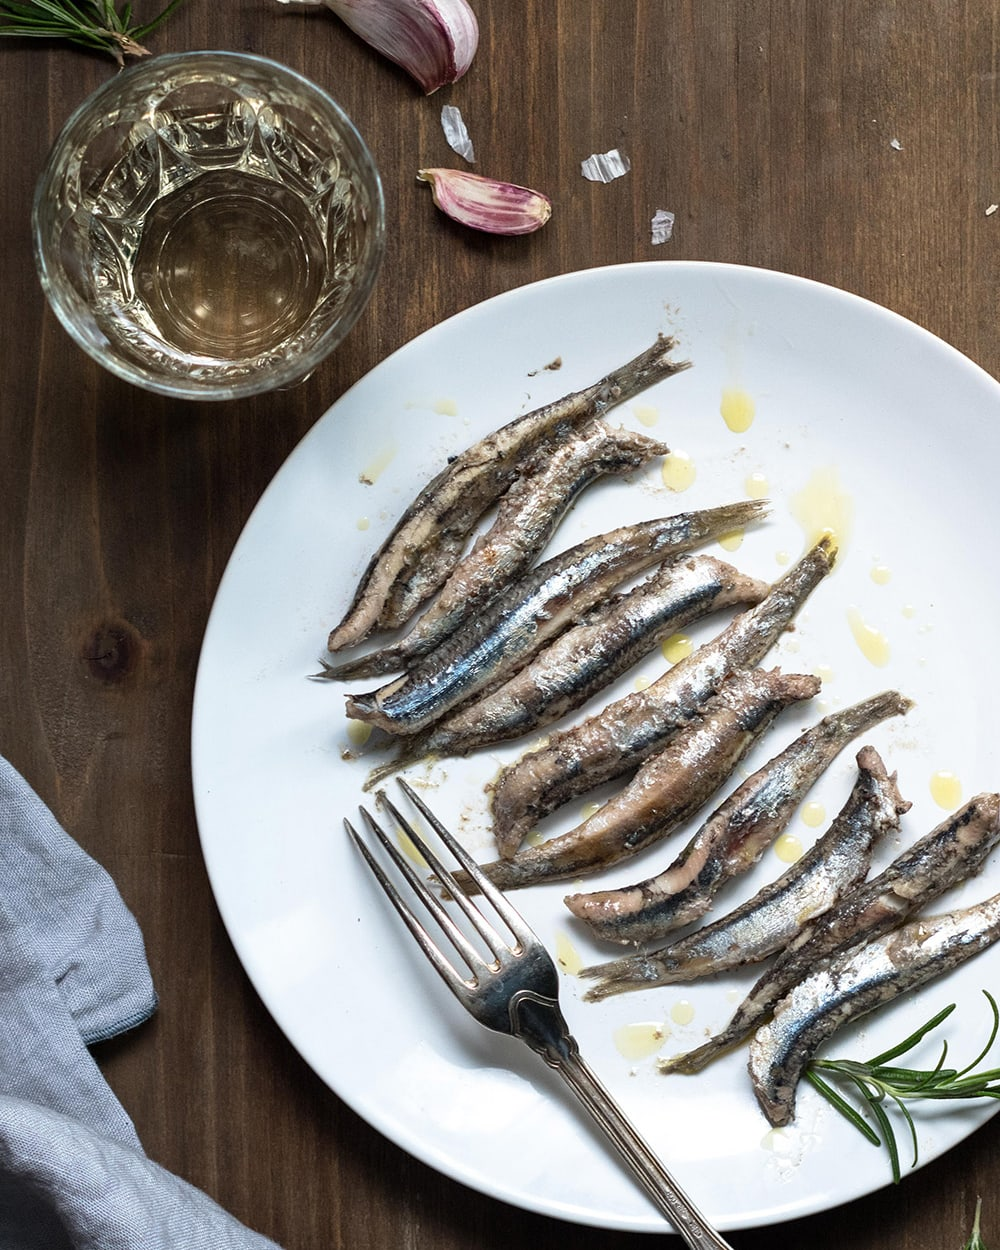 Restaurants in Cinque Terre: a plate of anchovies